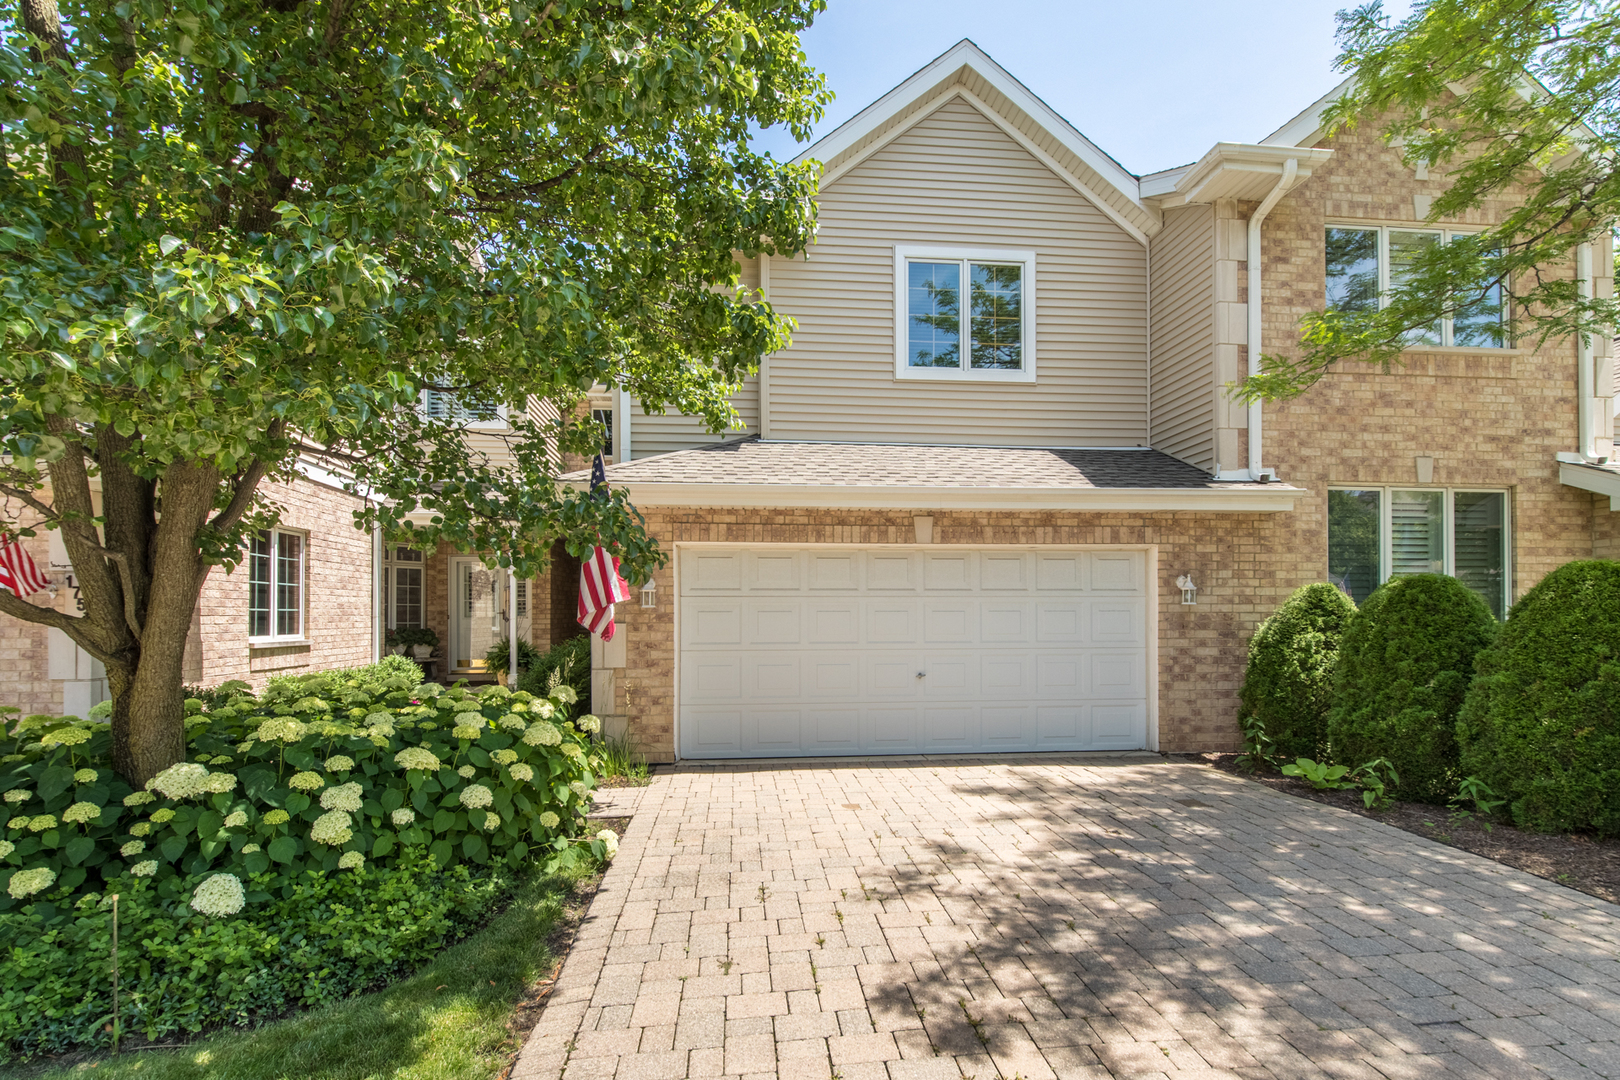 Homes For Sale In The Park Ridge Pointe Subdivision